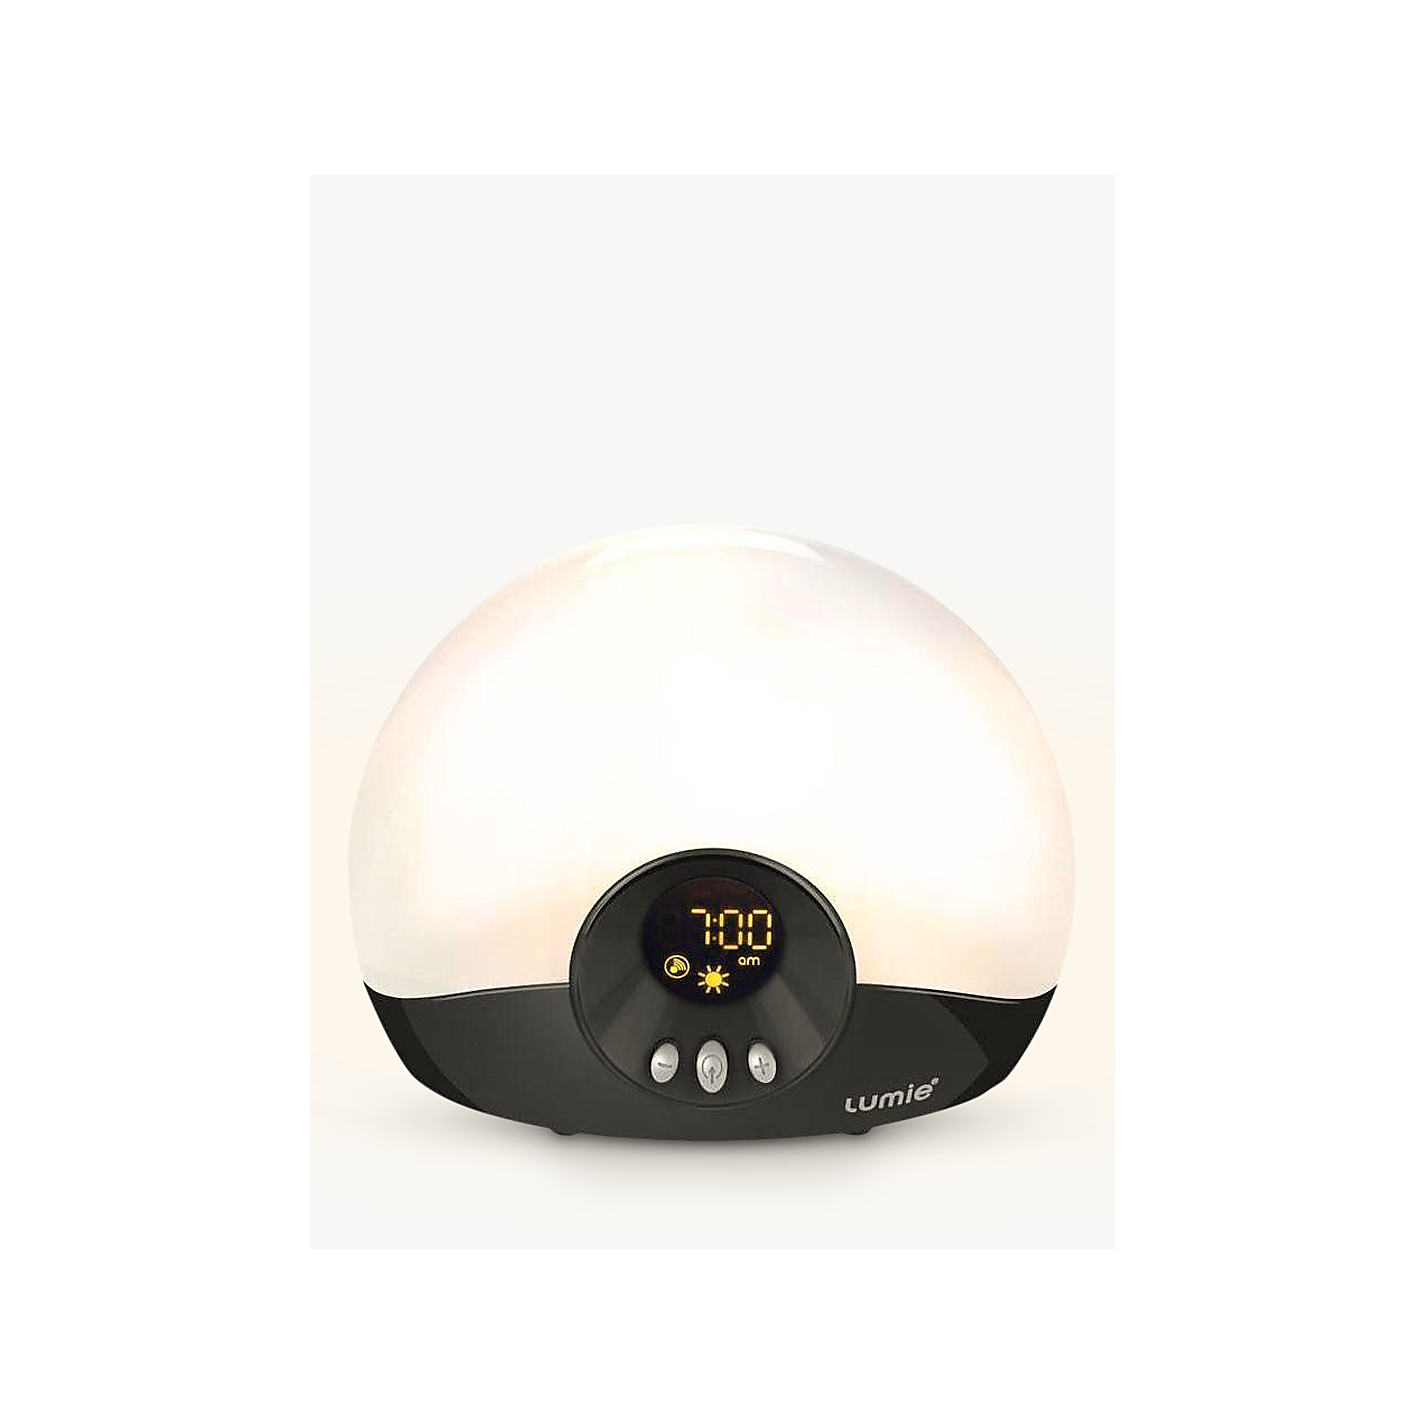 Buy Lumie Bodyclock Go 75 Wake Up To Daylight Light Online At Johnlewis